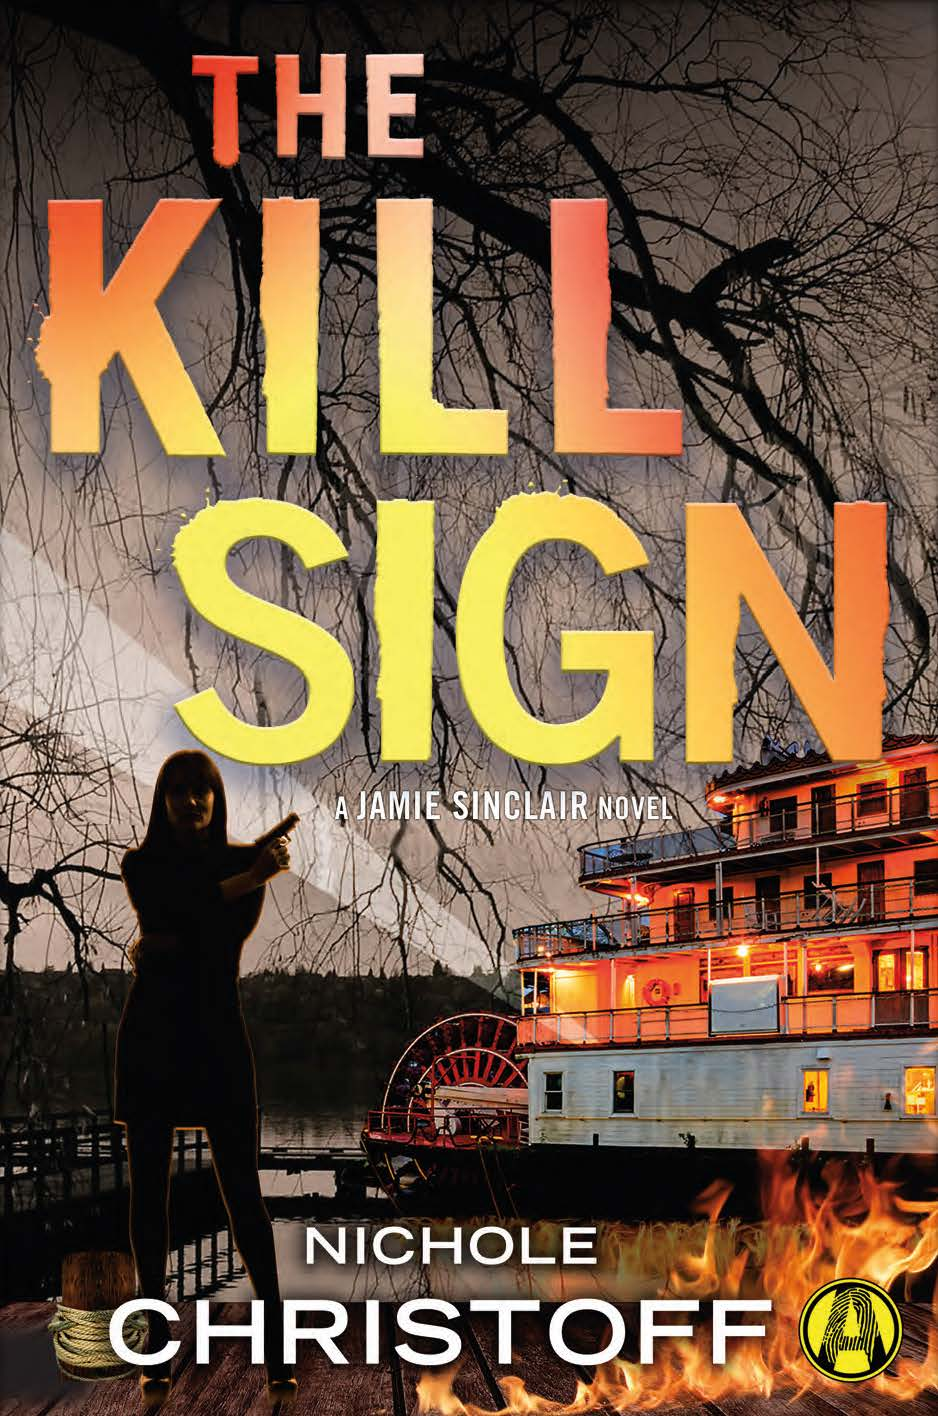 THE KILL SIGN cover.jpg